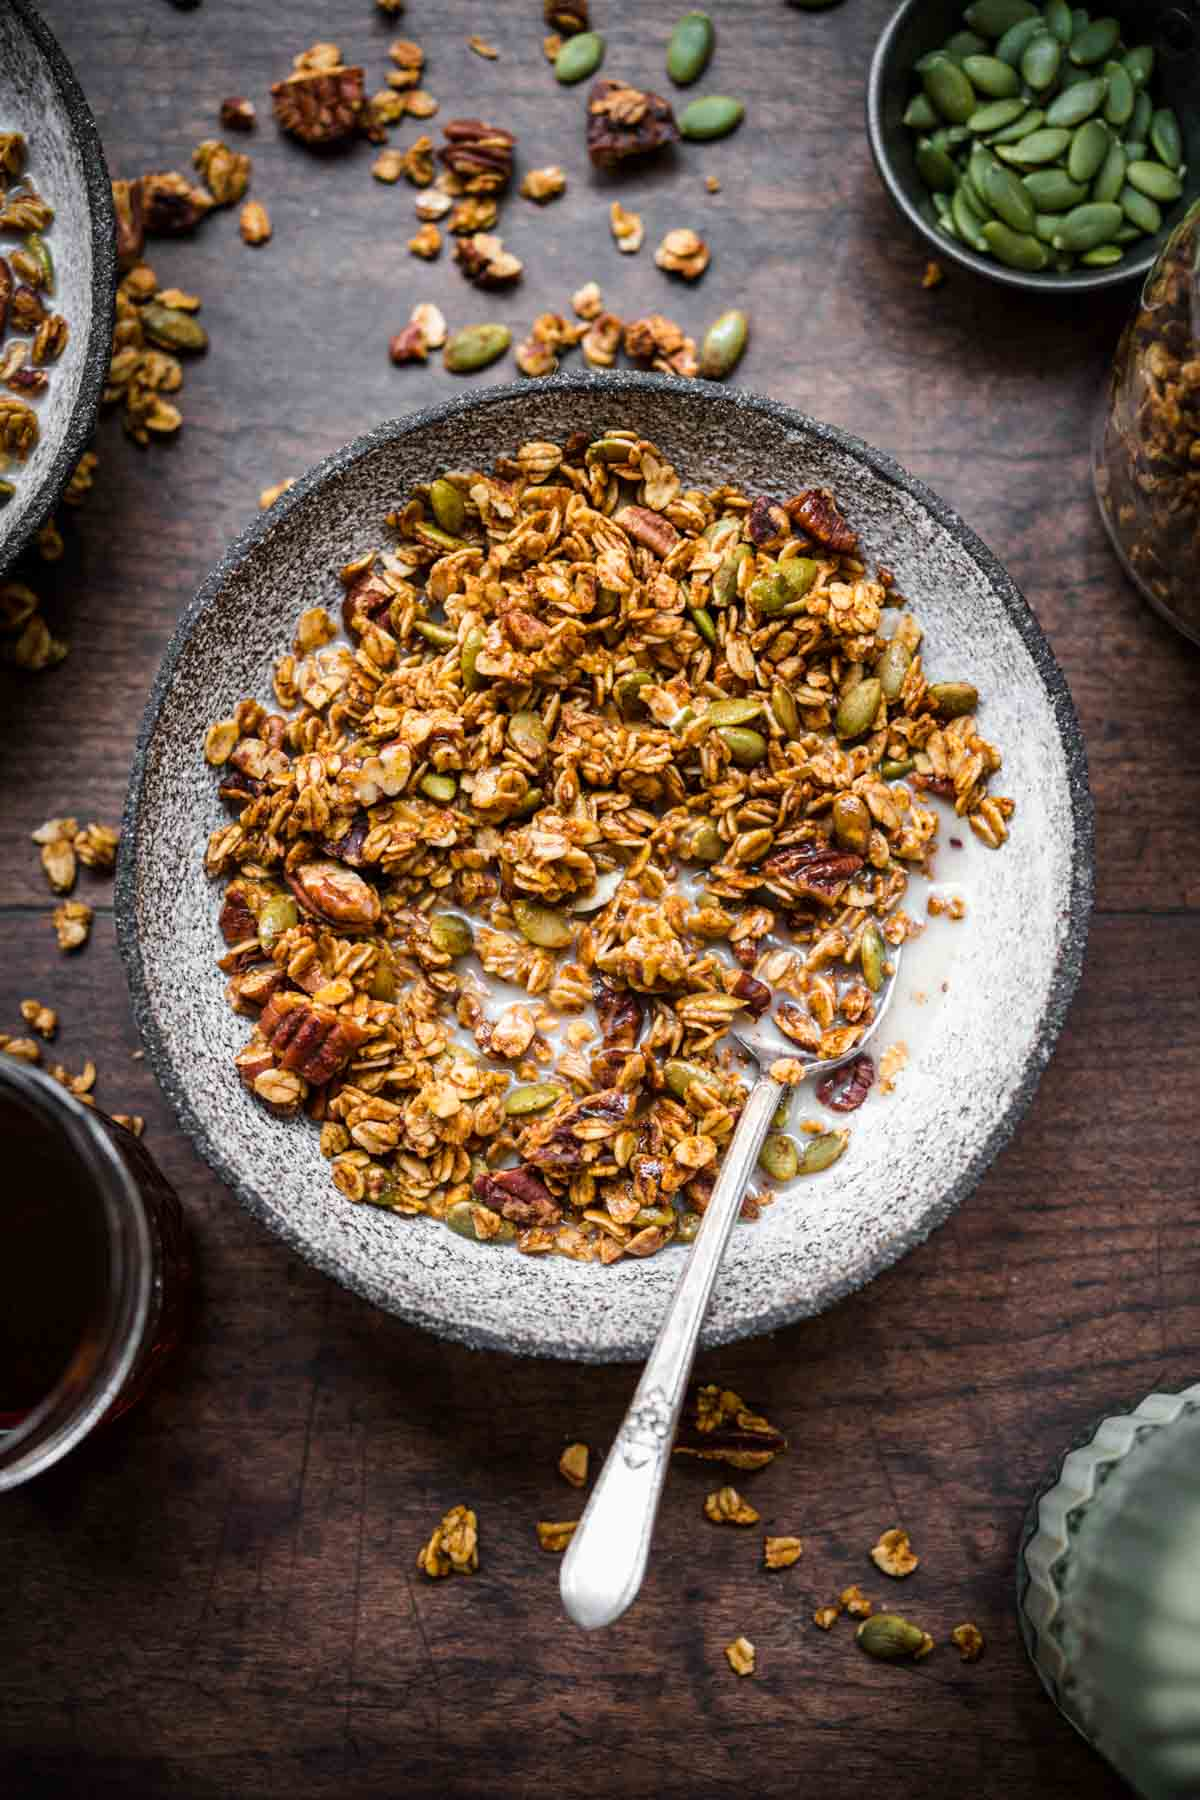 Overhead view of granola in a bowl with milk.